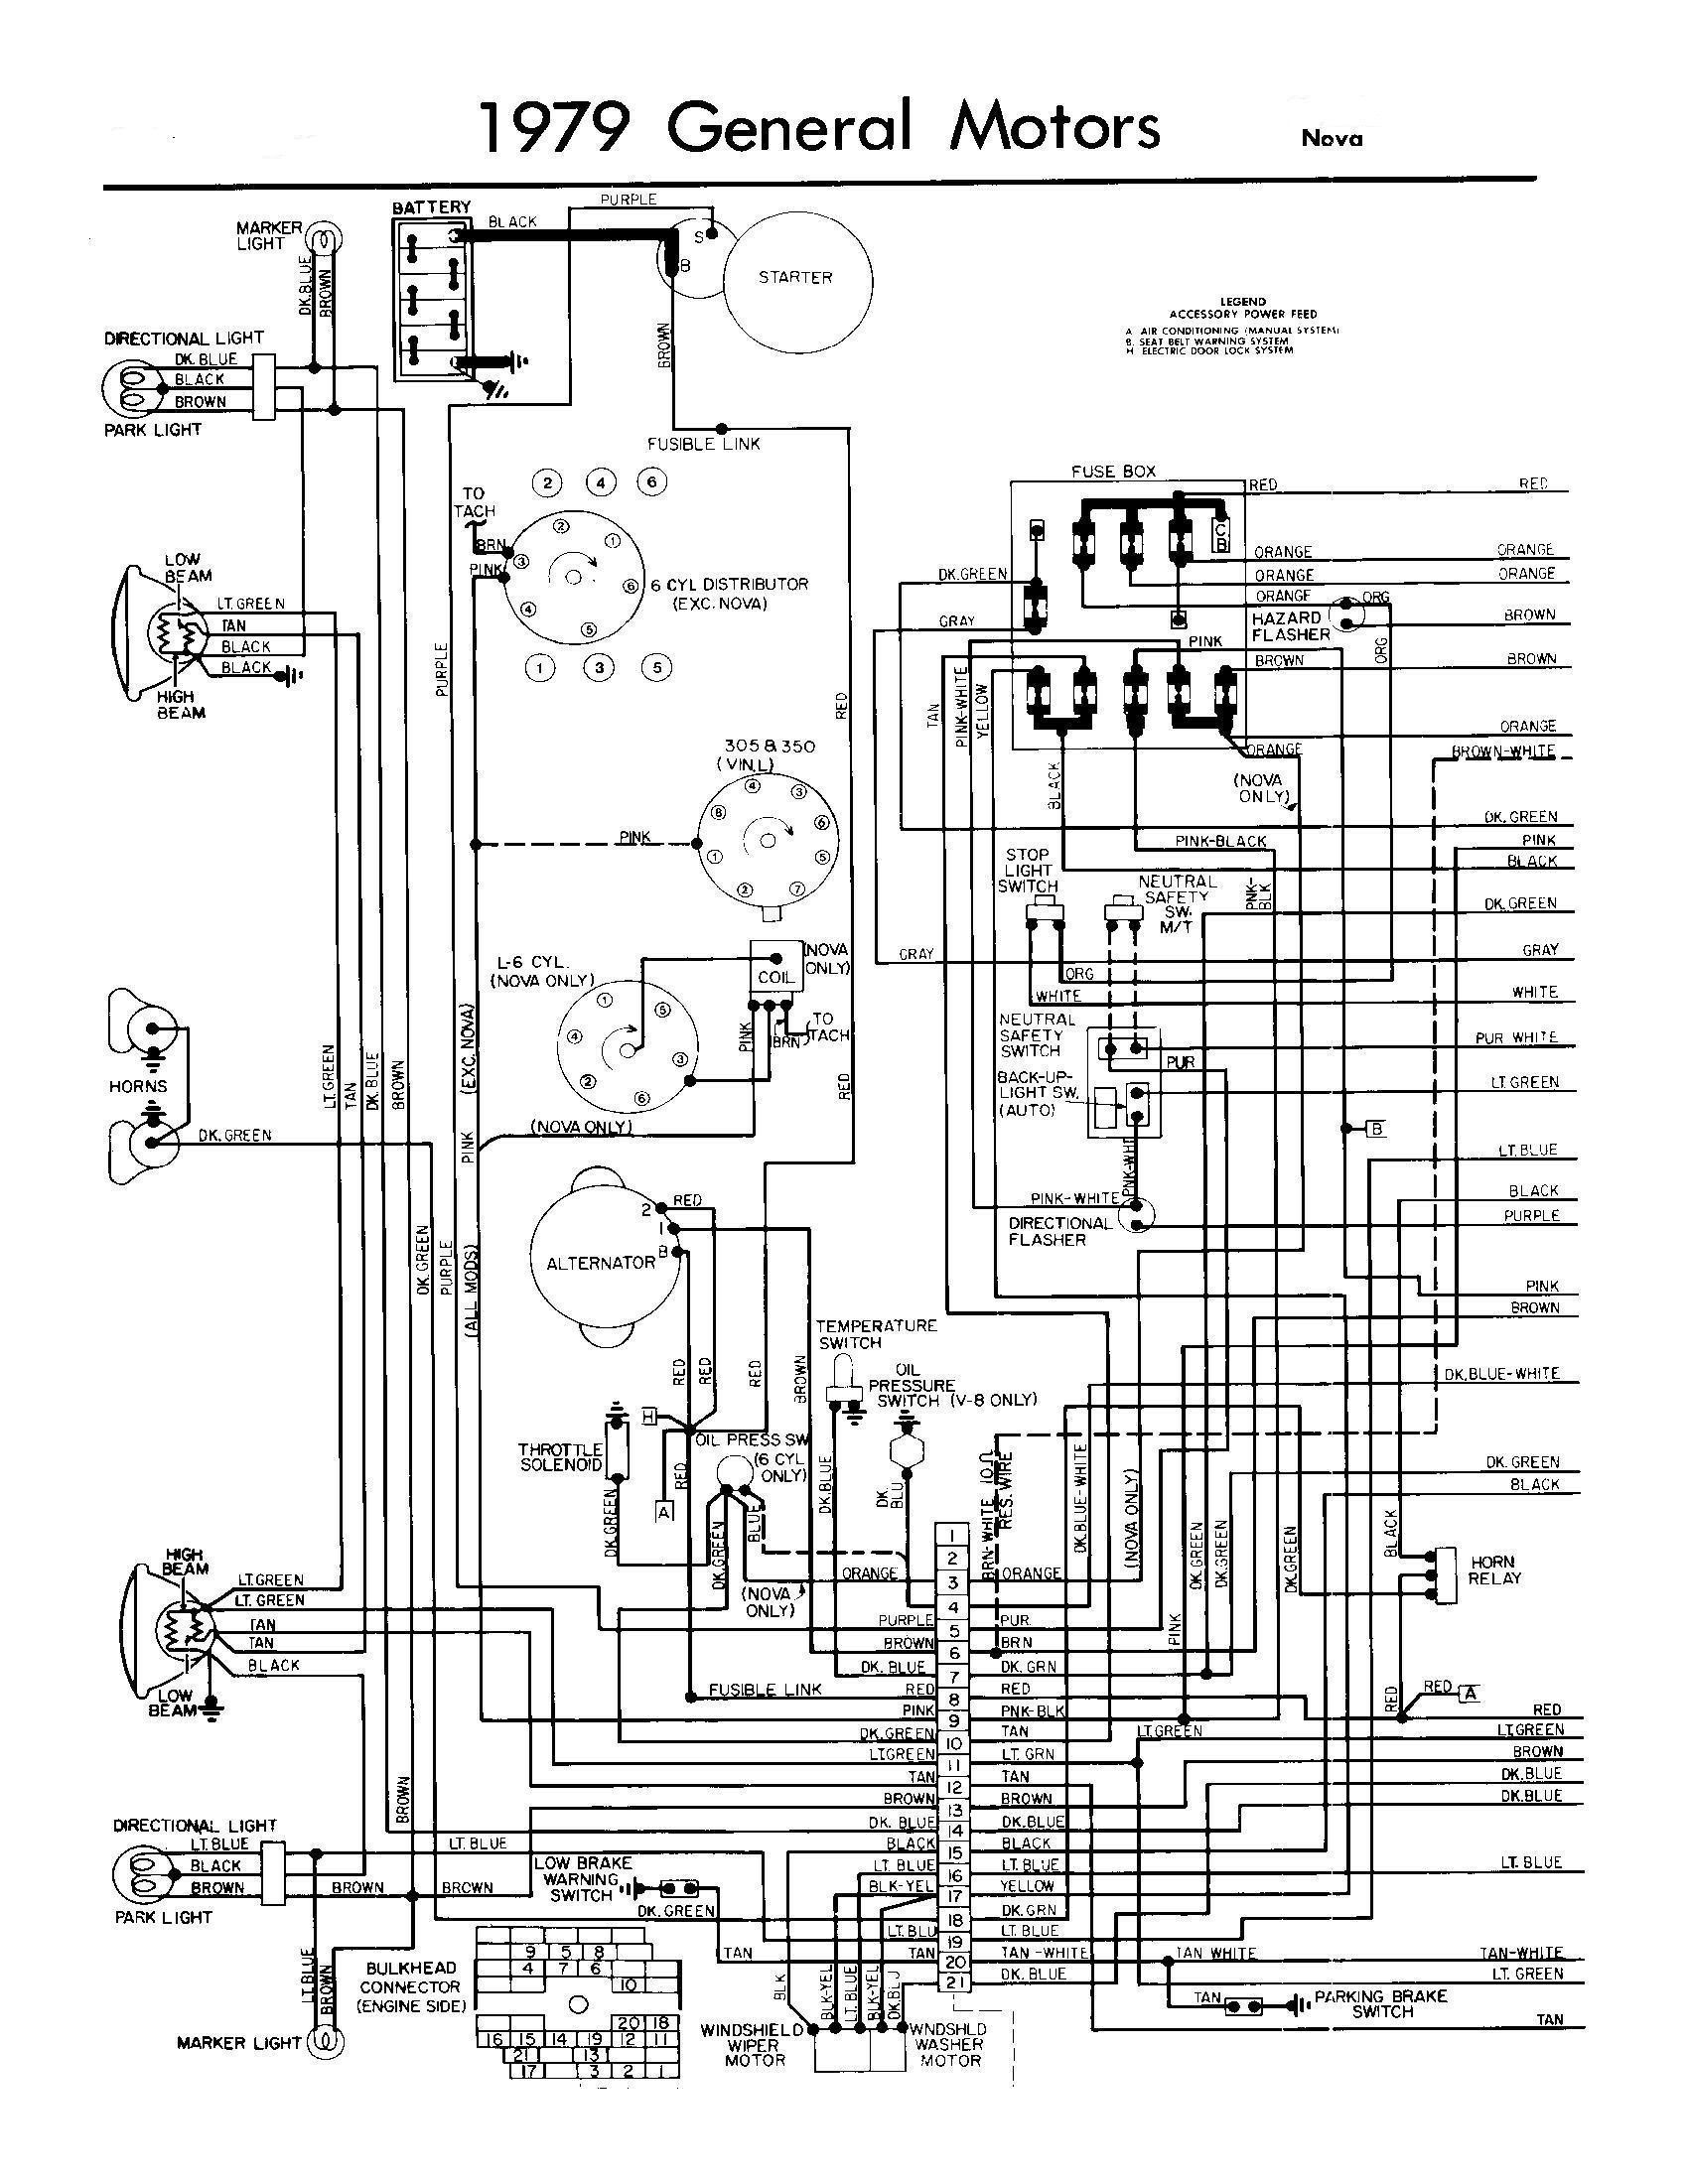 1972 c20 wiring diagrams automotive wiring diagram data schema  chevy 210 car turn signal diagram likewise chevy truck wiring 1972 c20 wiring diagrams automotive